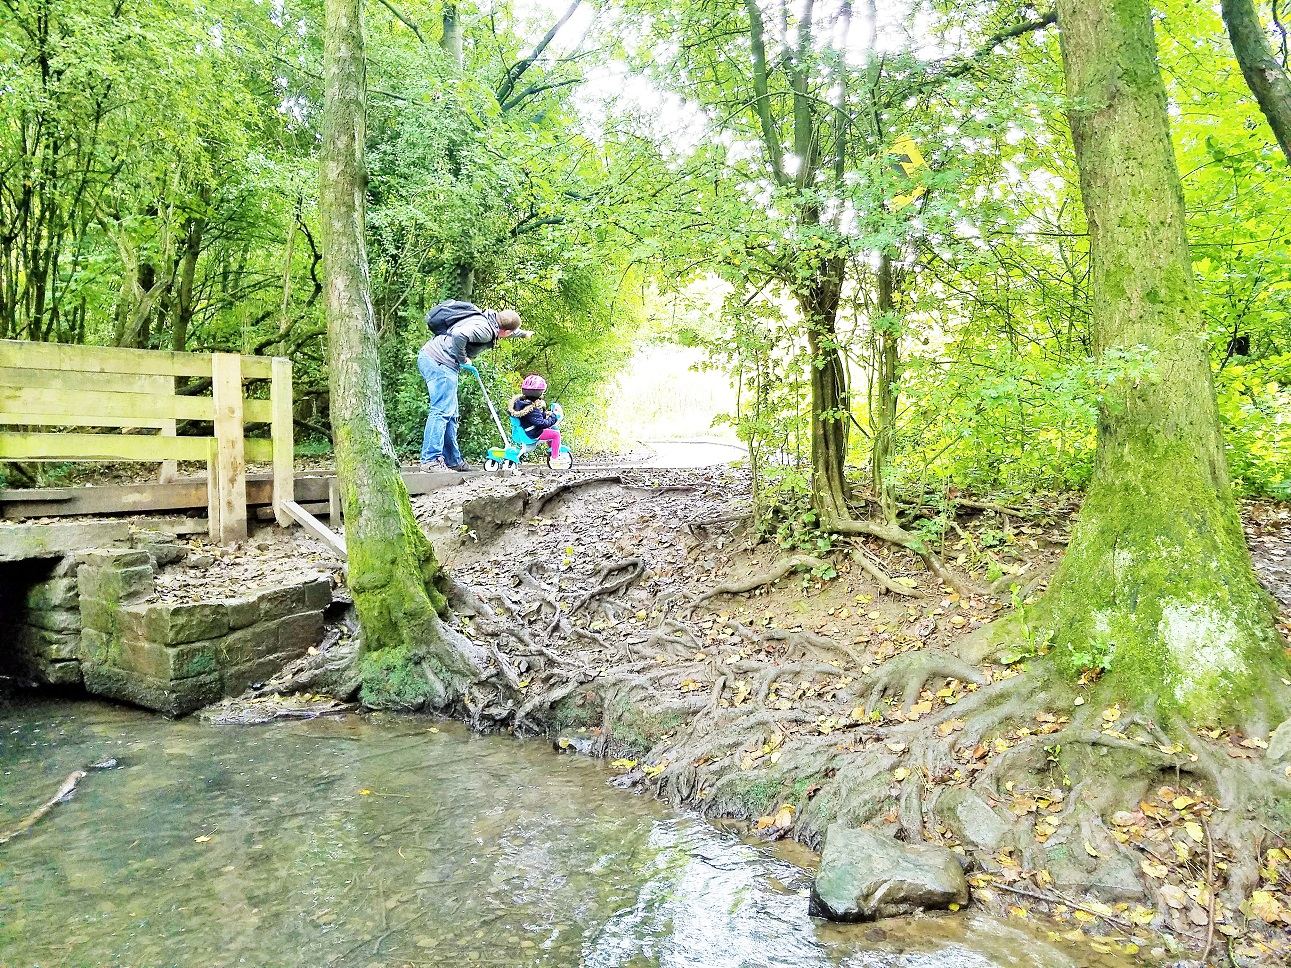 VTech Trike oakwell hall stream with a bridge